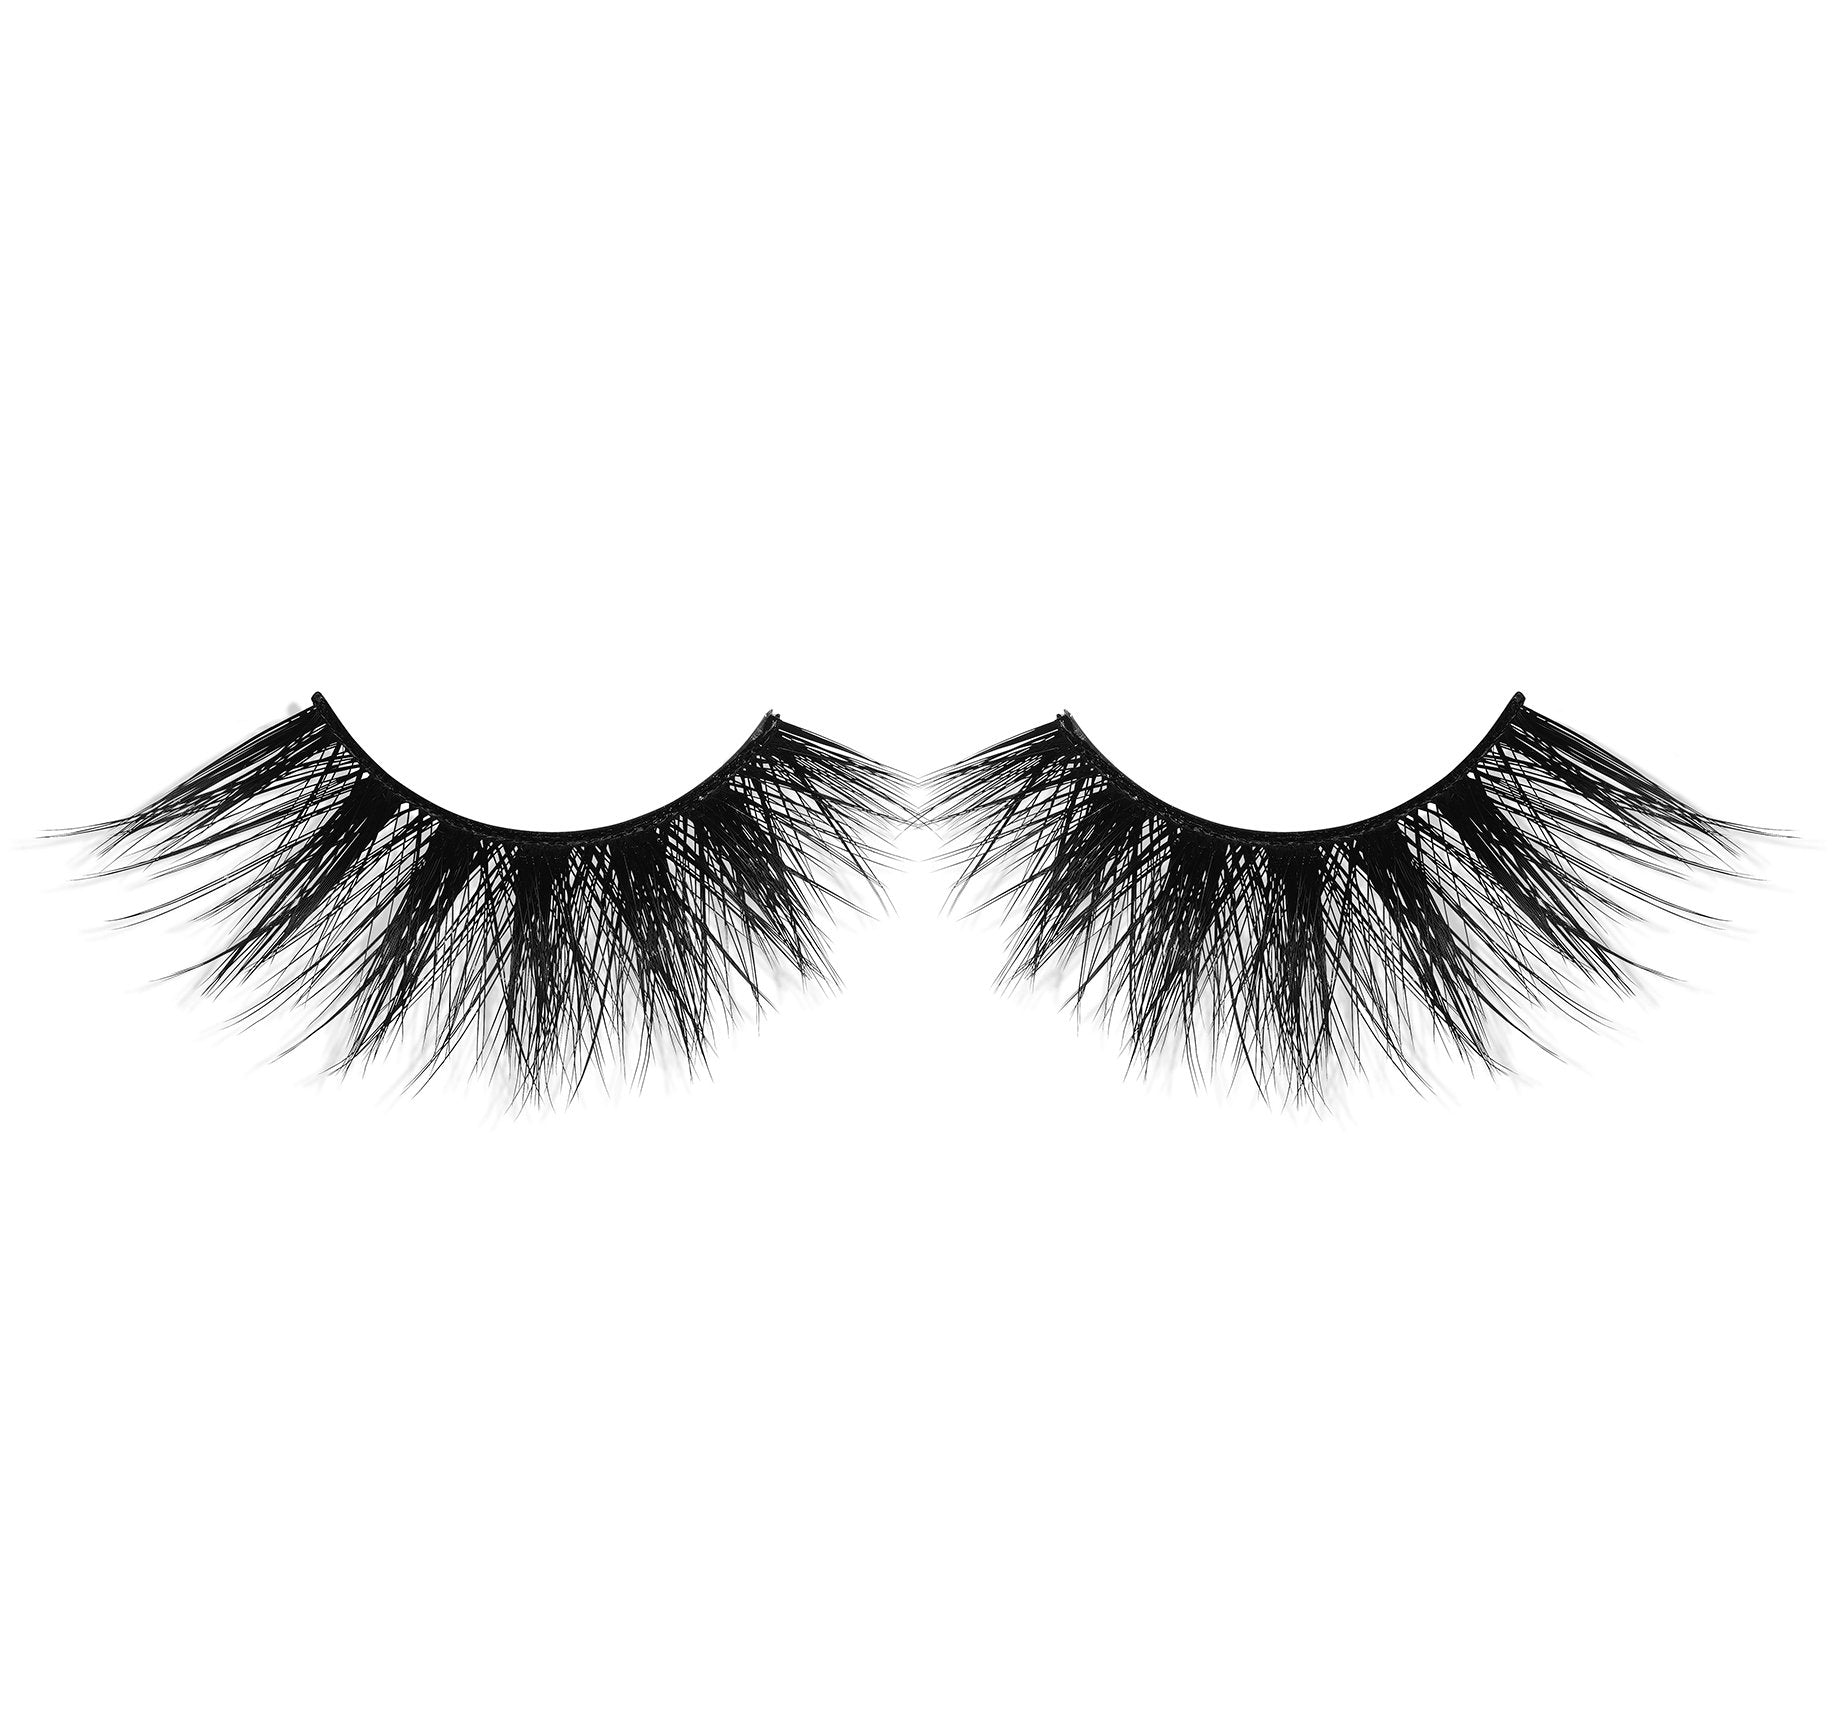 PREMIUM LASHES -  YASS QUEEN, view larger image